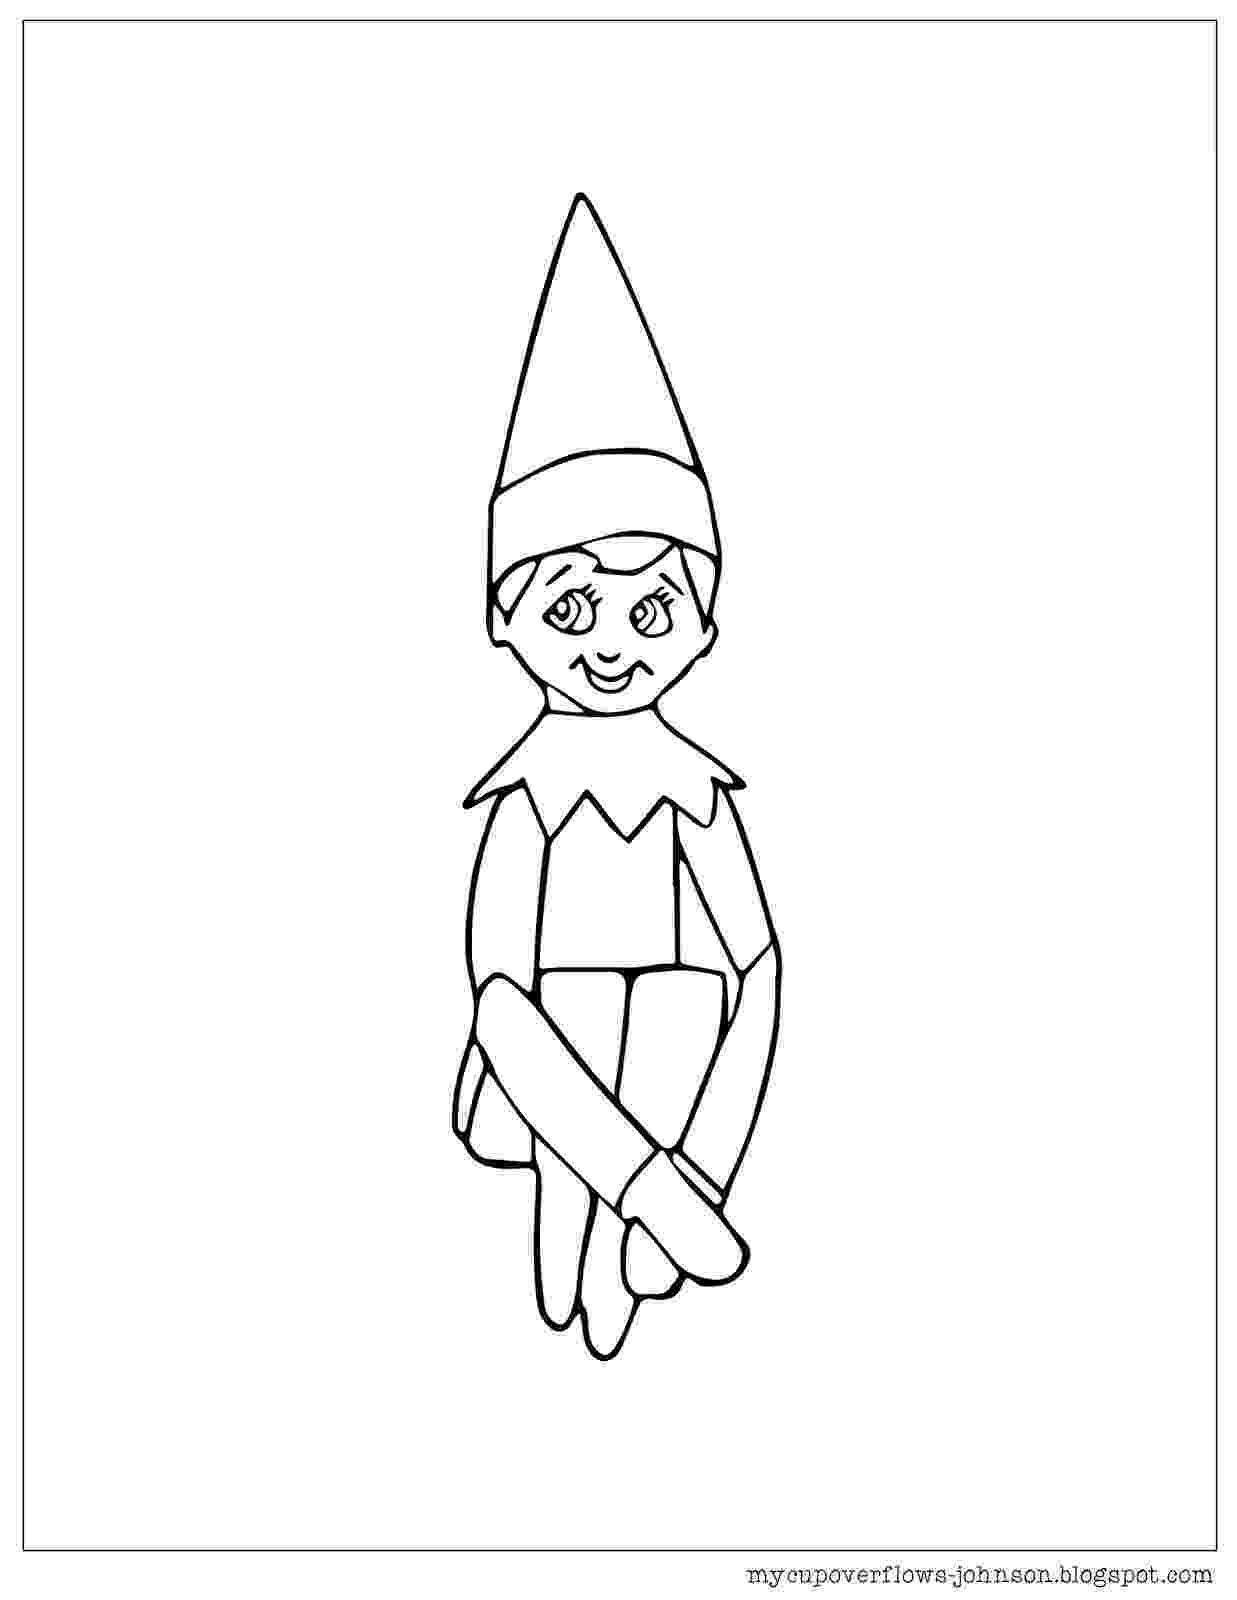 elf on the shelf coloring book girl elf on the shelf coloring pages you might also be shelf on book elf coloring the